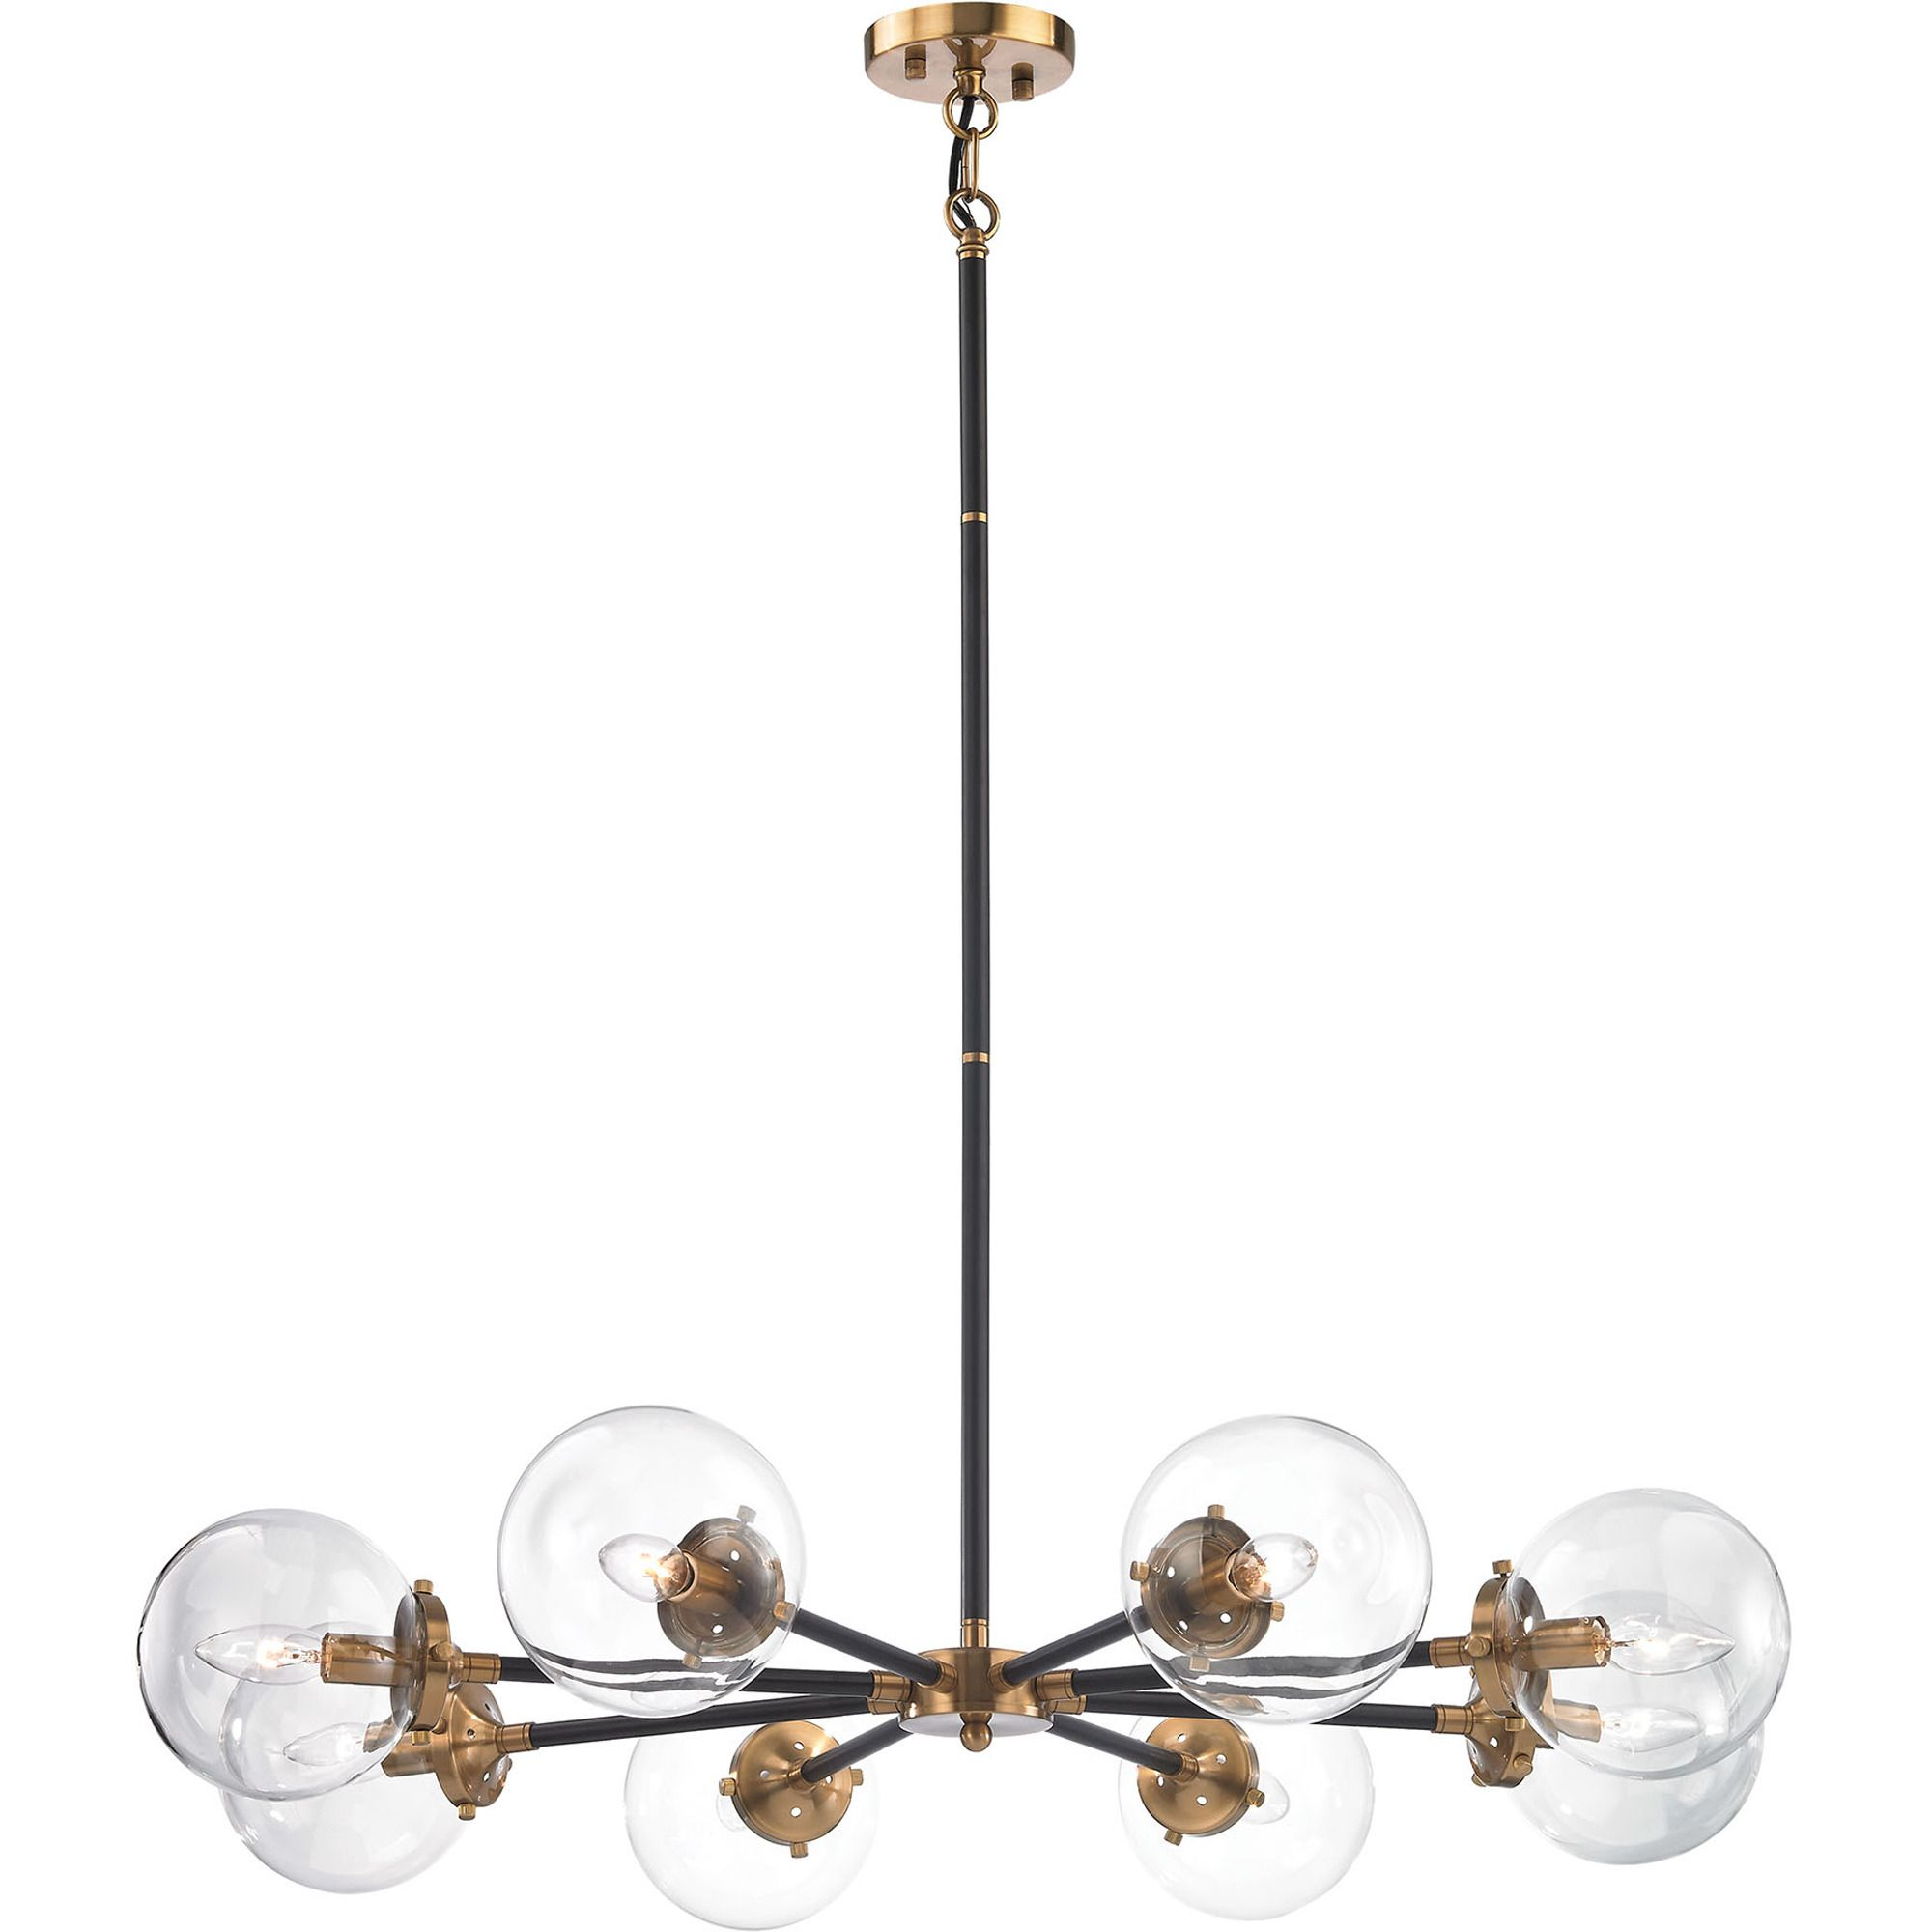 Boudreaux 8 light chandelier in matte black and antique gold by elk boudreaux 8 light chandelier in matte black and antique gold by elk lighting home aloadofball Choice Image